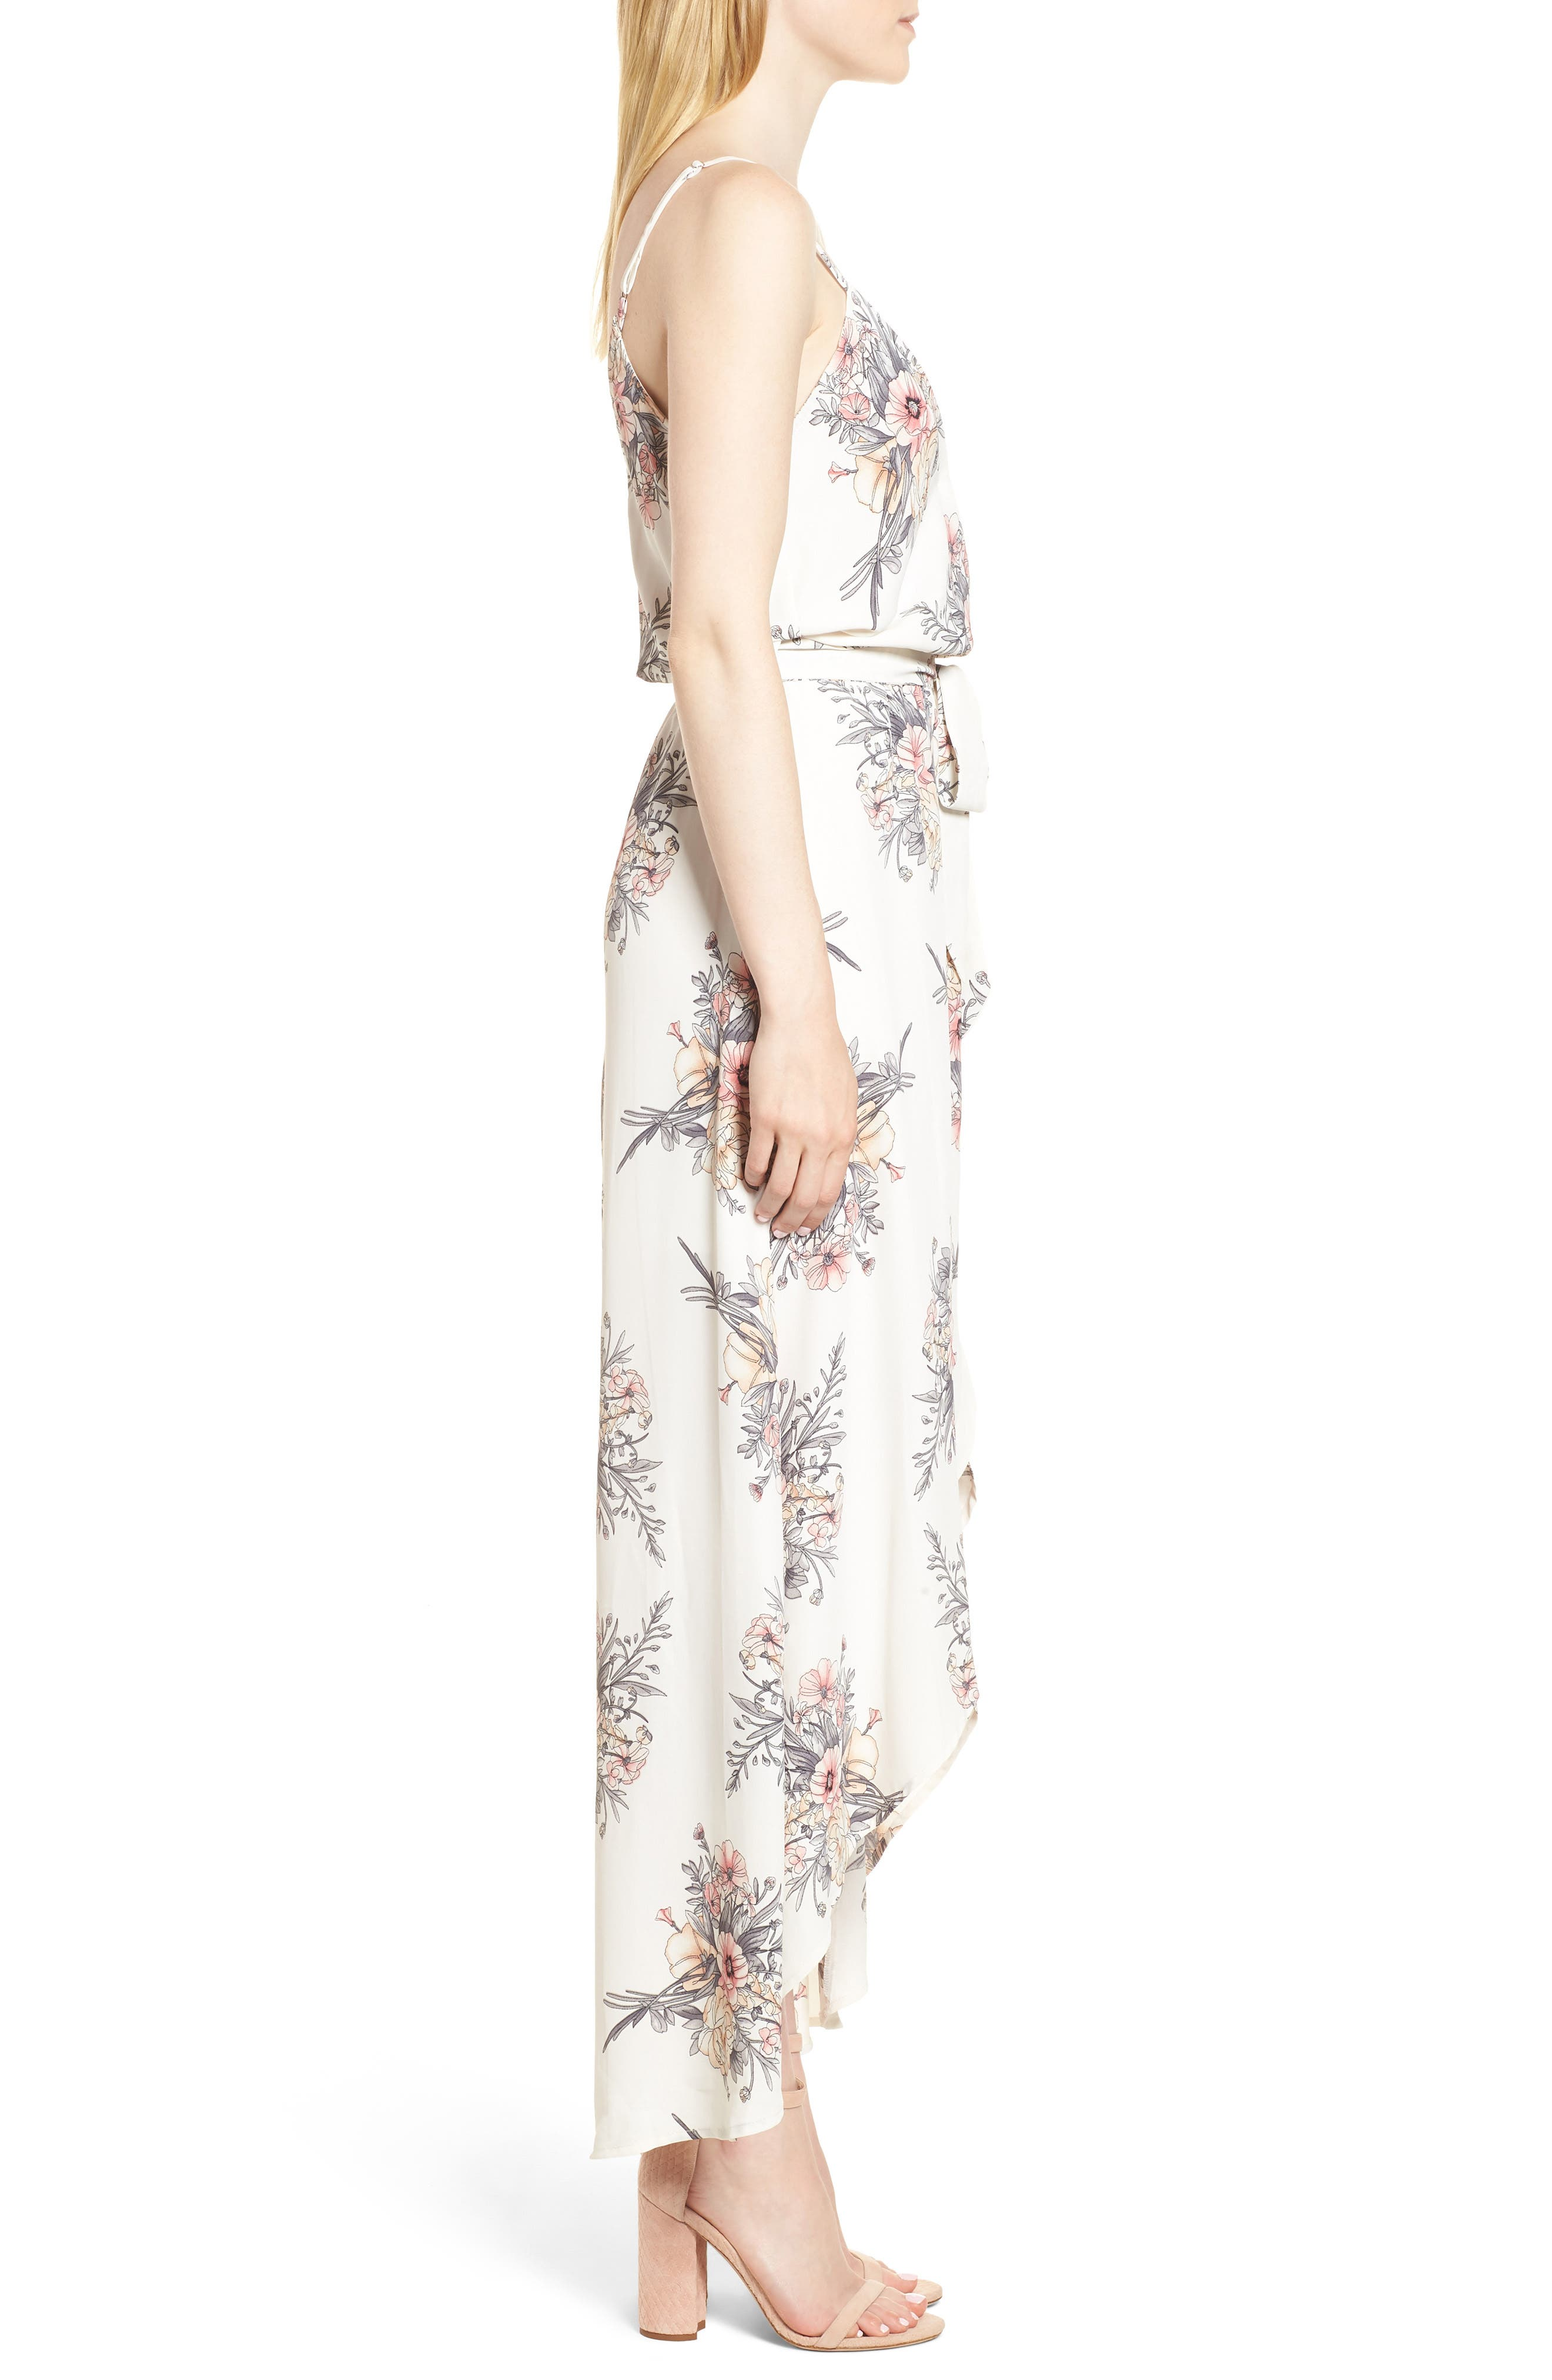 Bishop + Young Summer of Love Maxi Dress,                             Alternate thumbnail 3, color,                             Summer Of Love Print